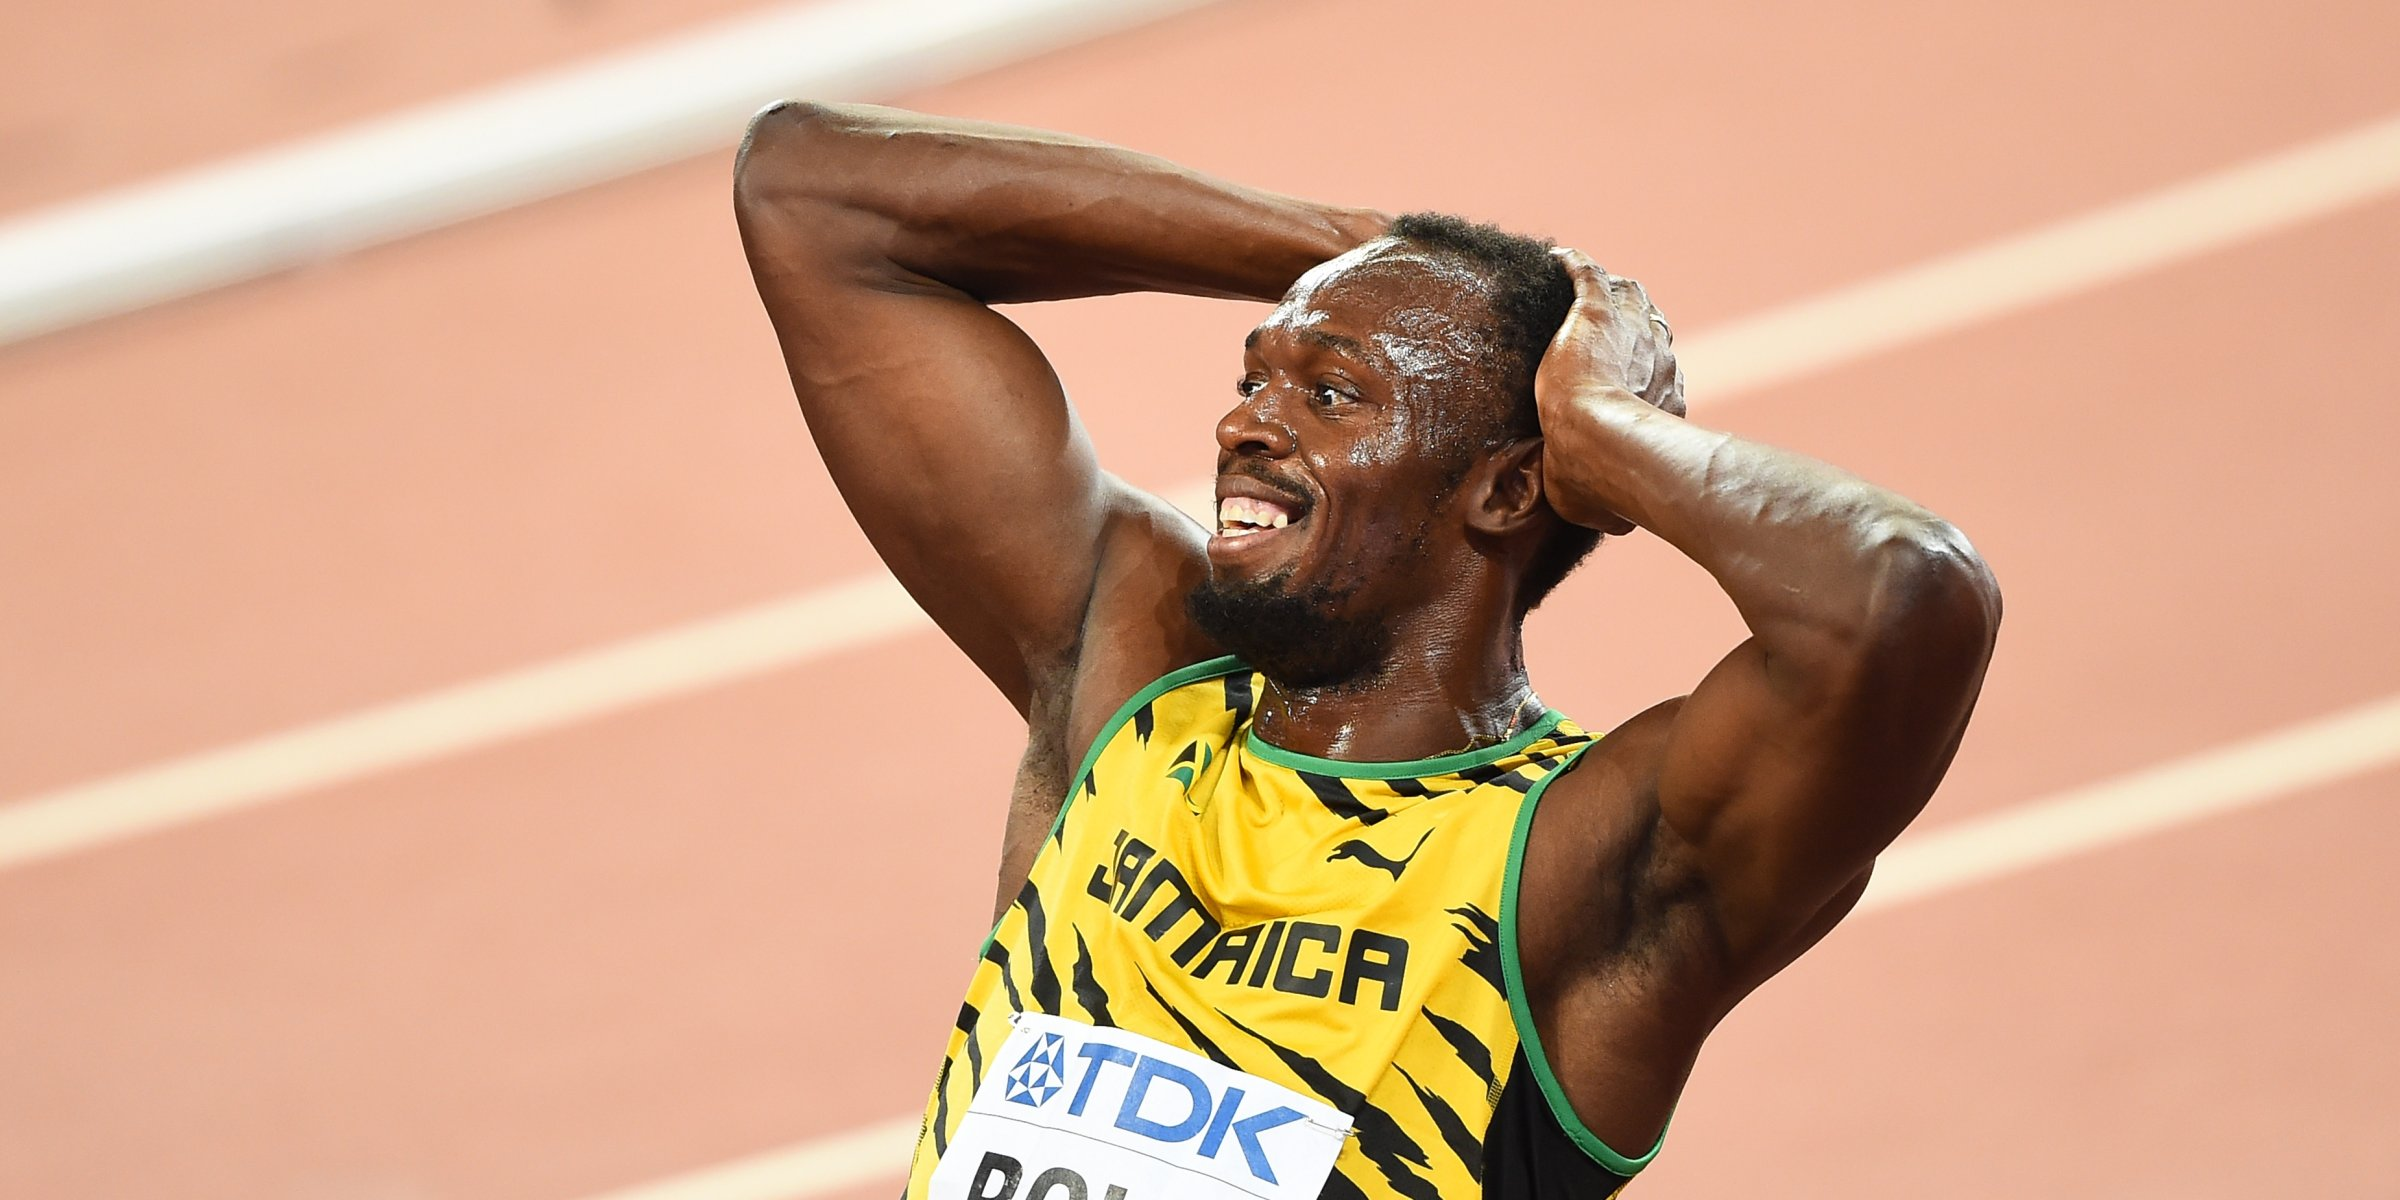 Sprint King Usain Bolt Tests Positive For Coronavirus Daily Sabah